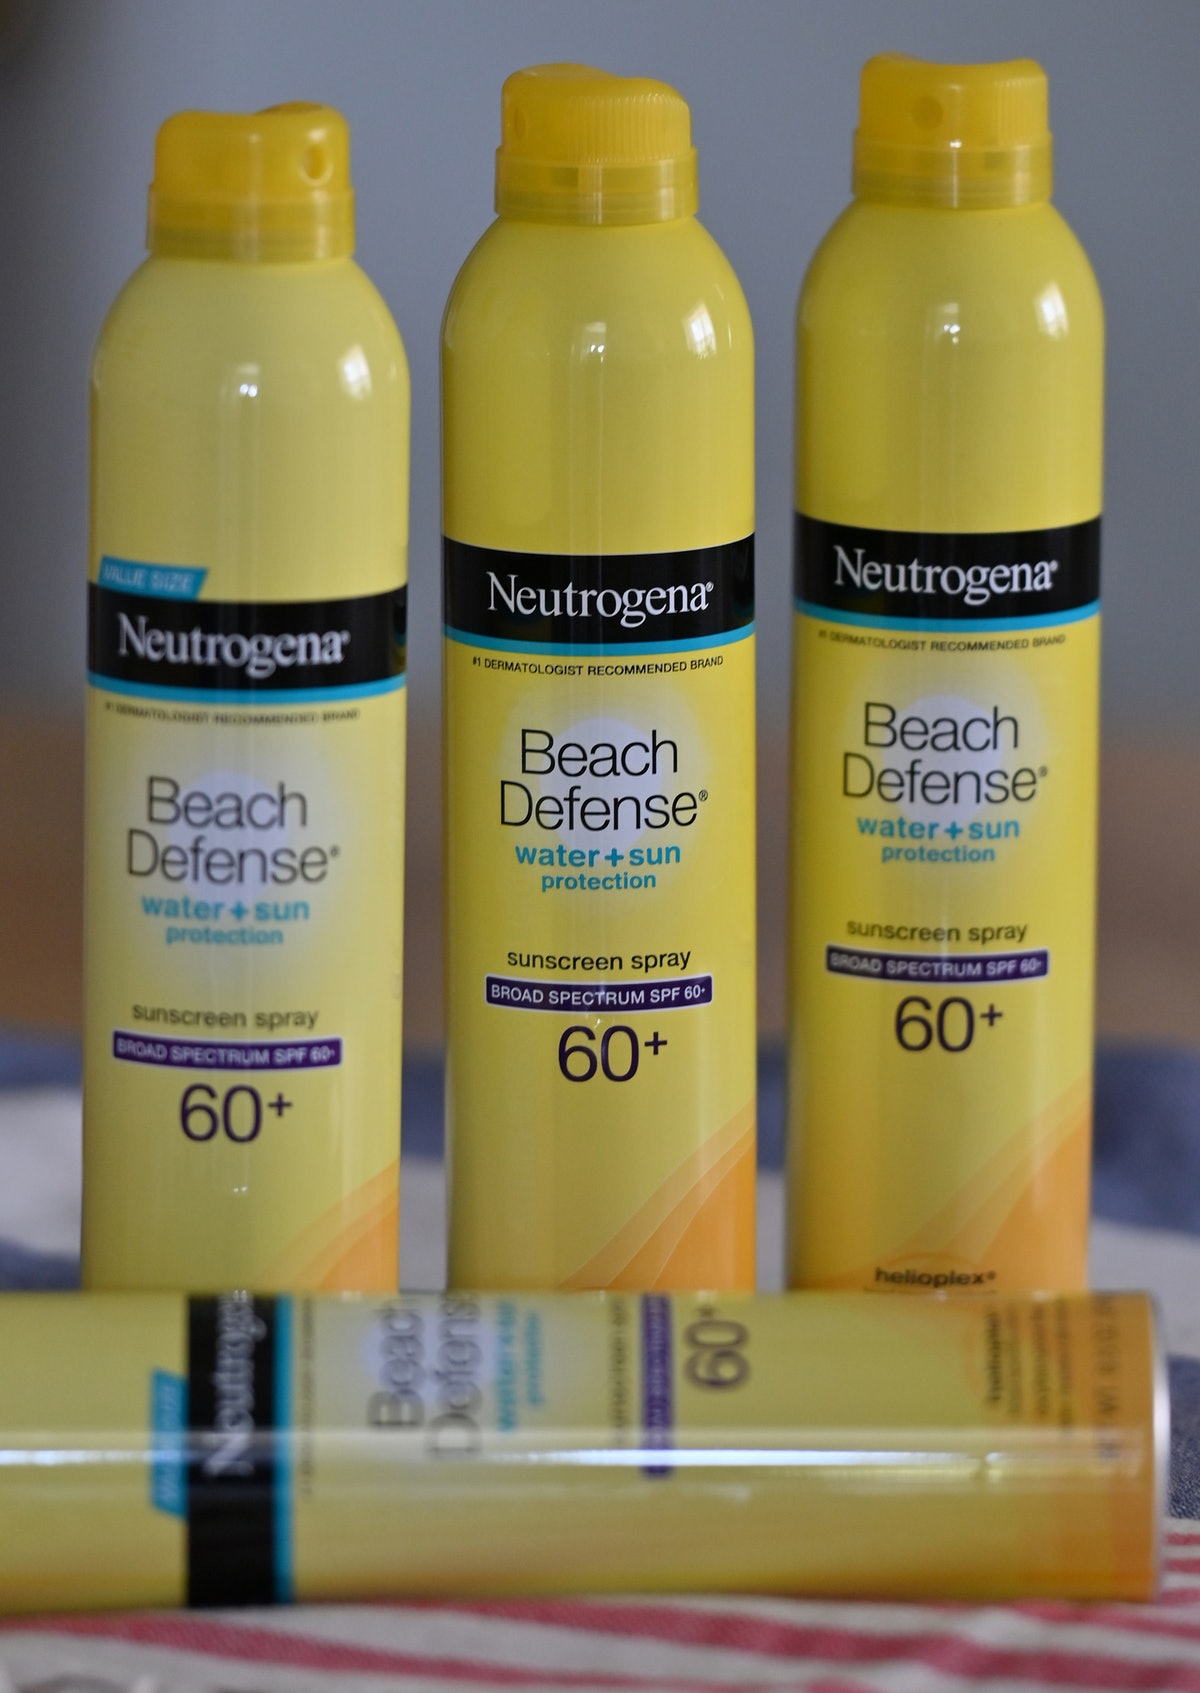 Some Neutrogena sunscreens were impacted as part of Johnson & Johnson's recall.